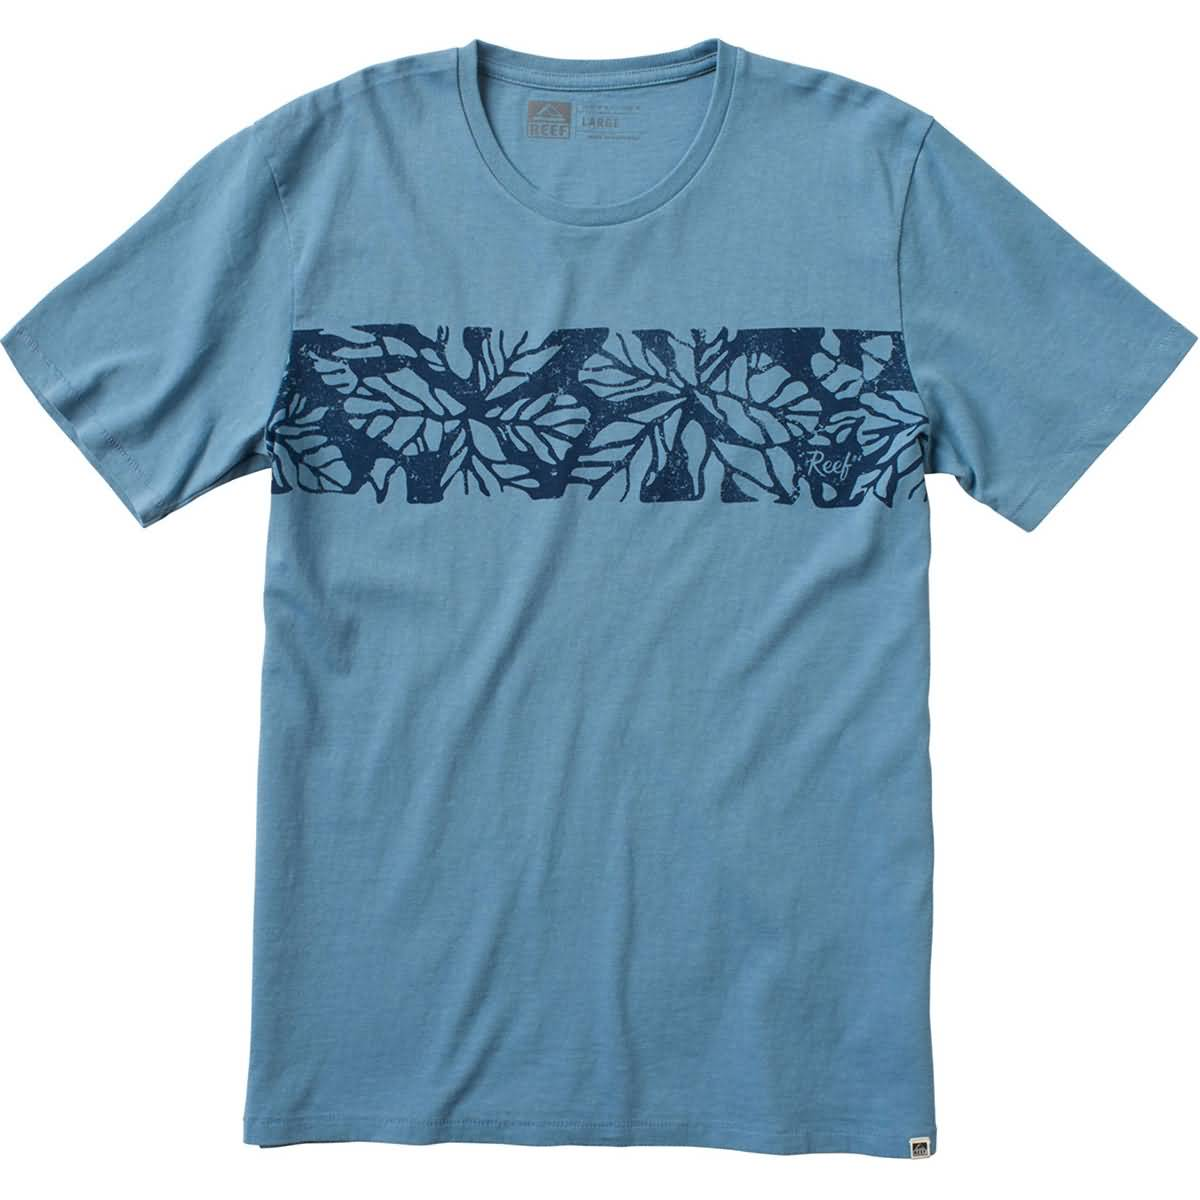 Reef Leafy Crew Men's Short-Sleeve Shirts (USED LIKE NEW / LAST CALL SALE)